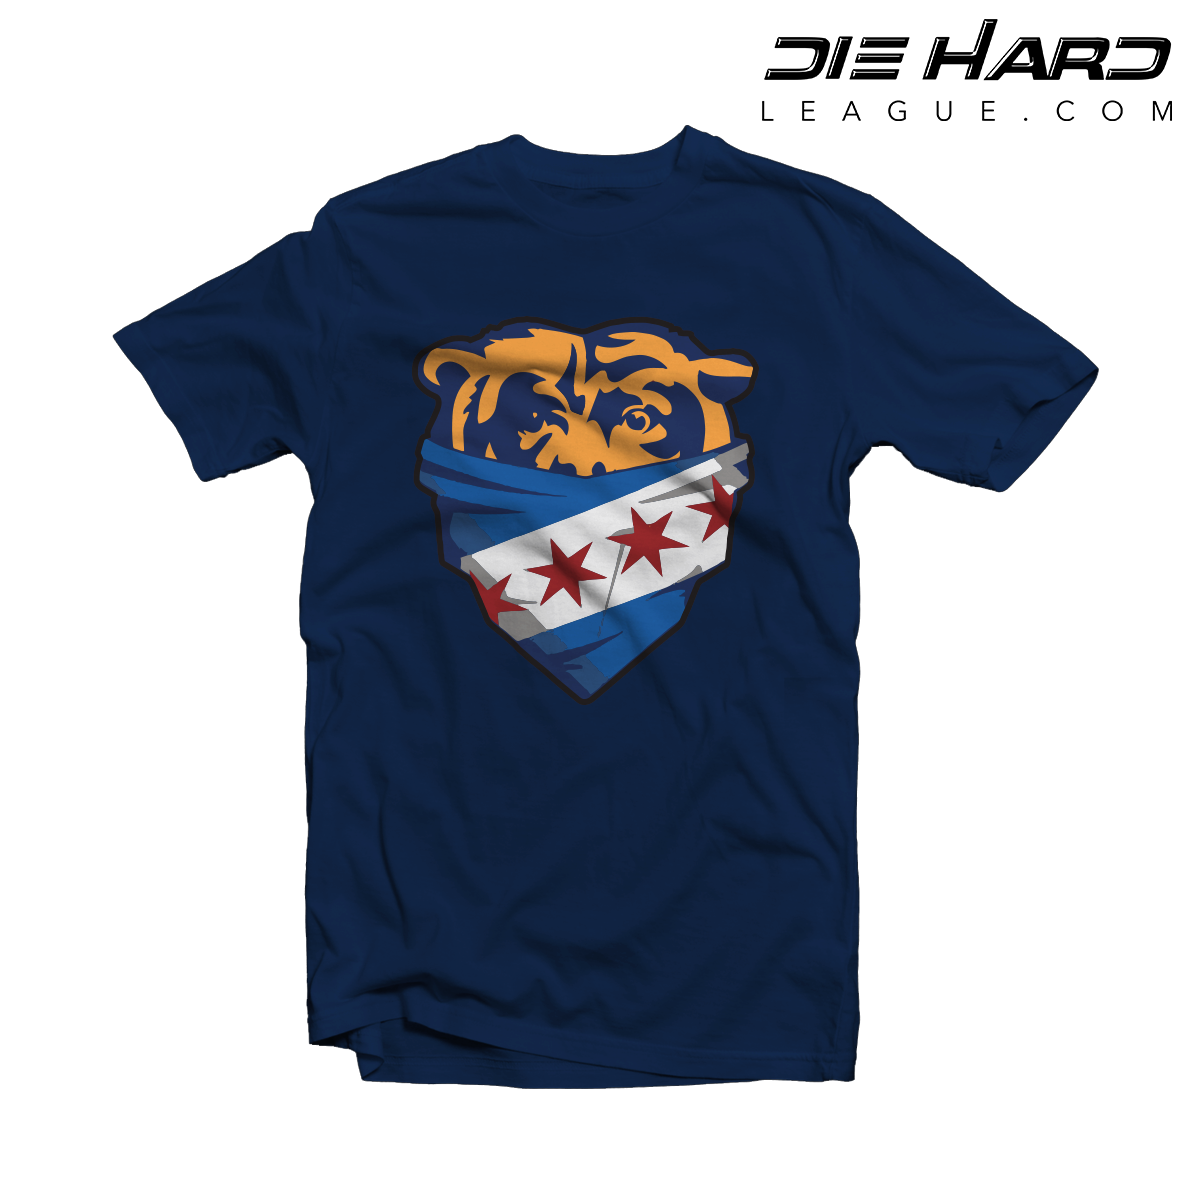 6e0c1f98 Bears Jersey - Chicago Bandanna Blue Tee [Best Selling]